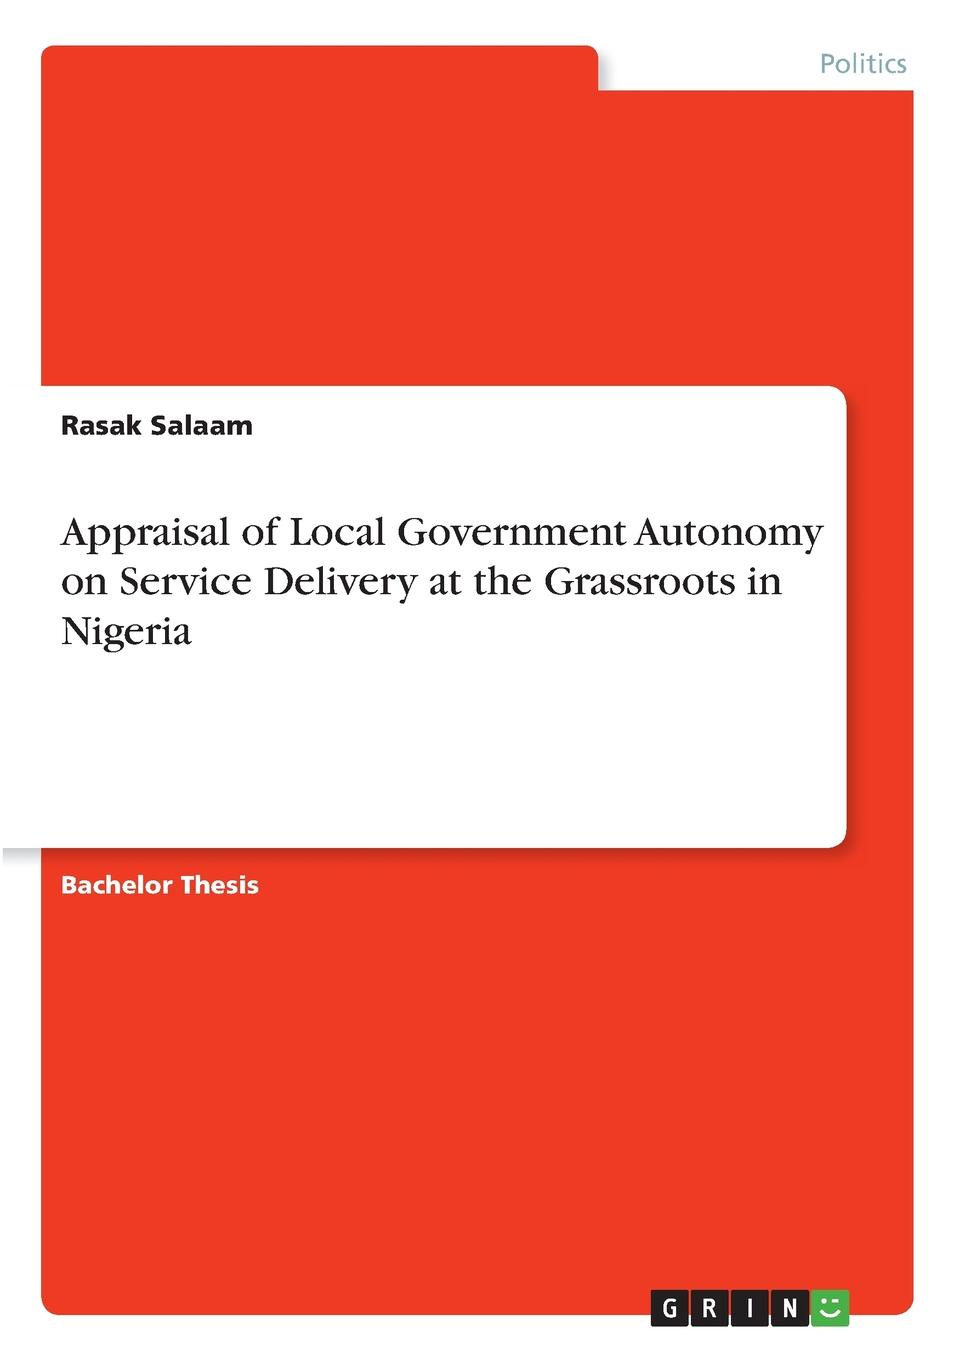 Rasak Salaam Appraisal of Local Government Autonomy on Service Delivery at the Grassroots in Nigeria